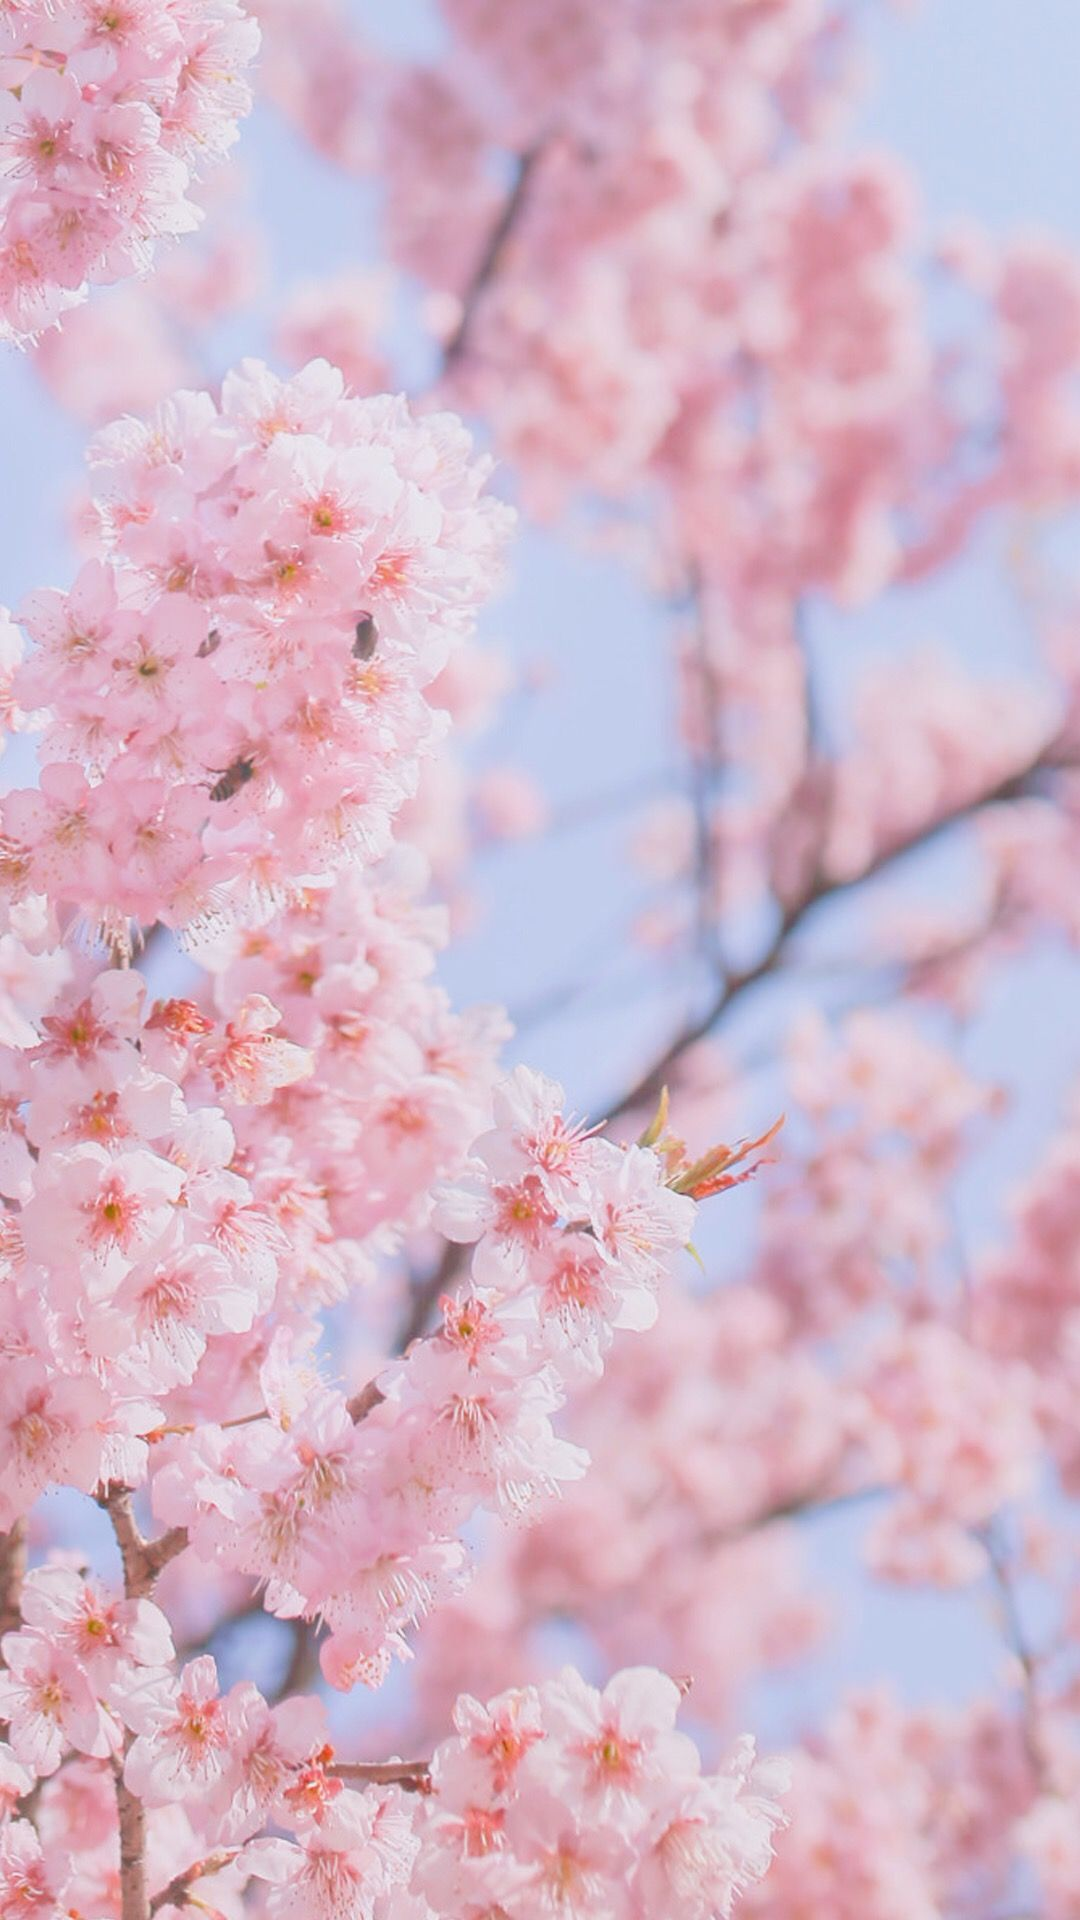 Pin By Santa Beiere On Blossom Cherry Blossom Wallpaper Floral Wallpaper Iphone Beautiful Flowers Wallpapers